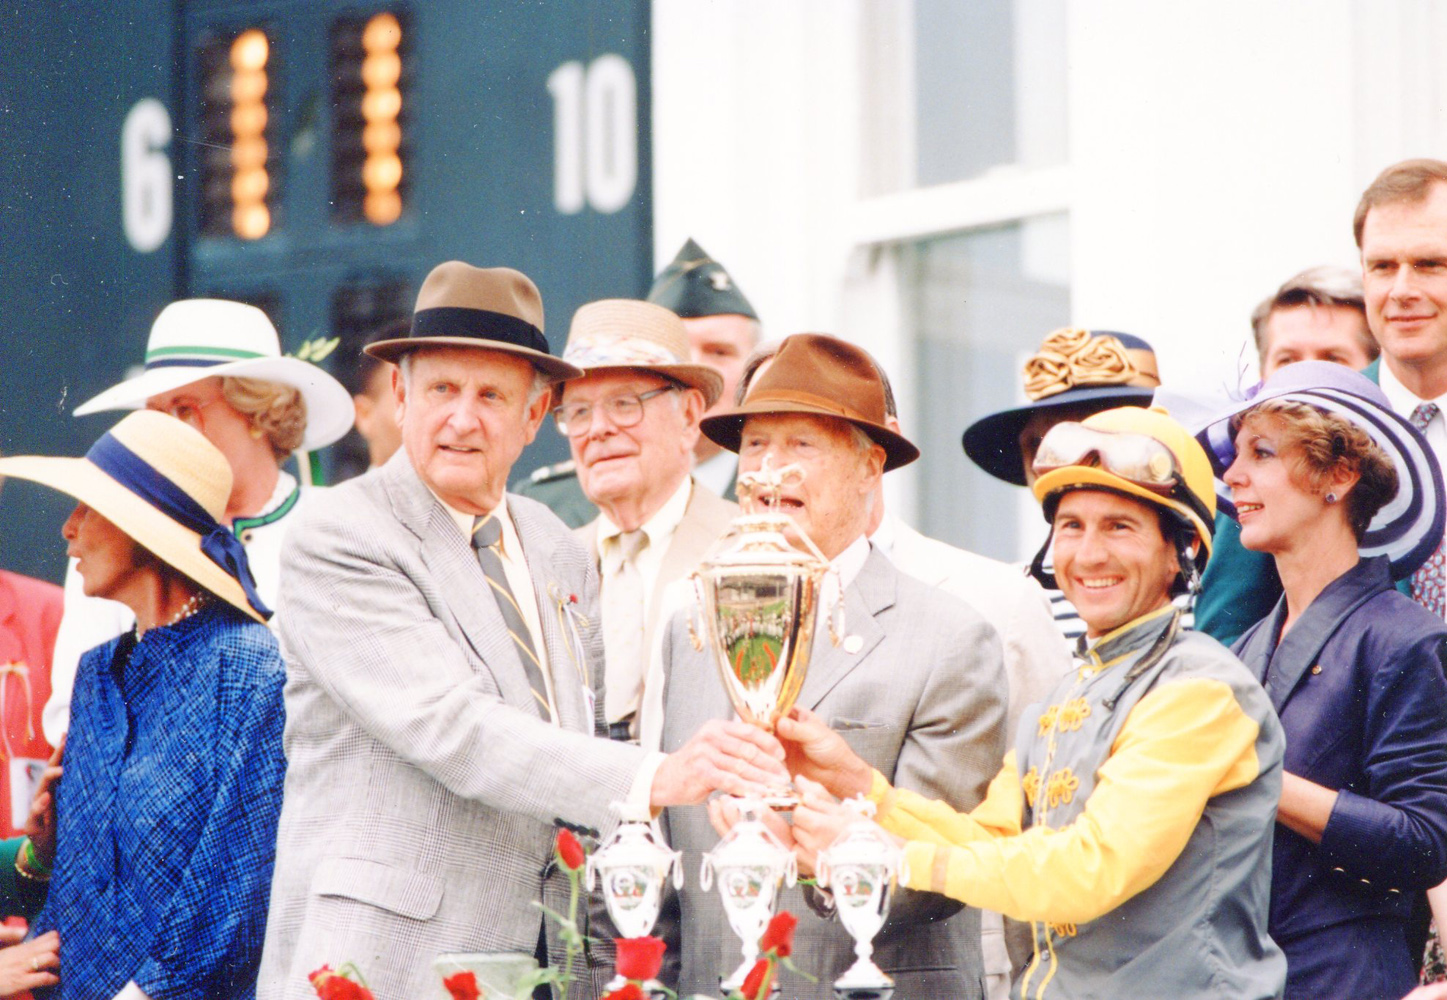 Mack Miller, Paul Mellon, and Jerry Bailey at the 1993 Kentucky Derby trophy presentation (Museum Collection)